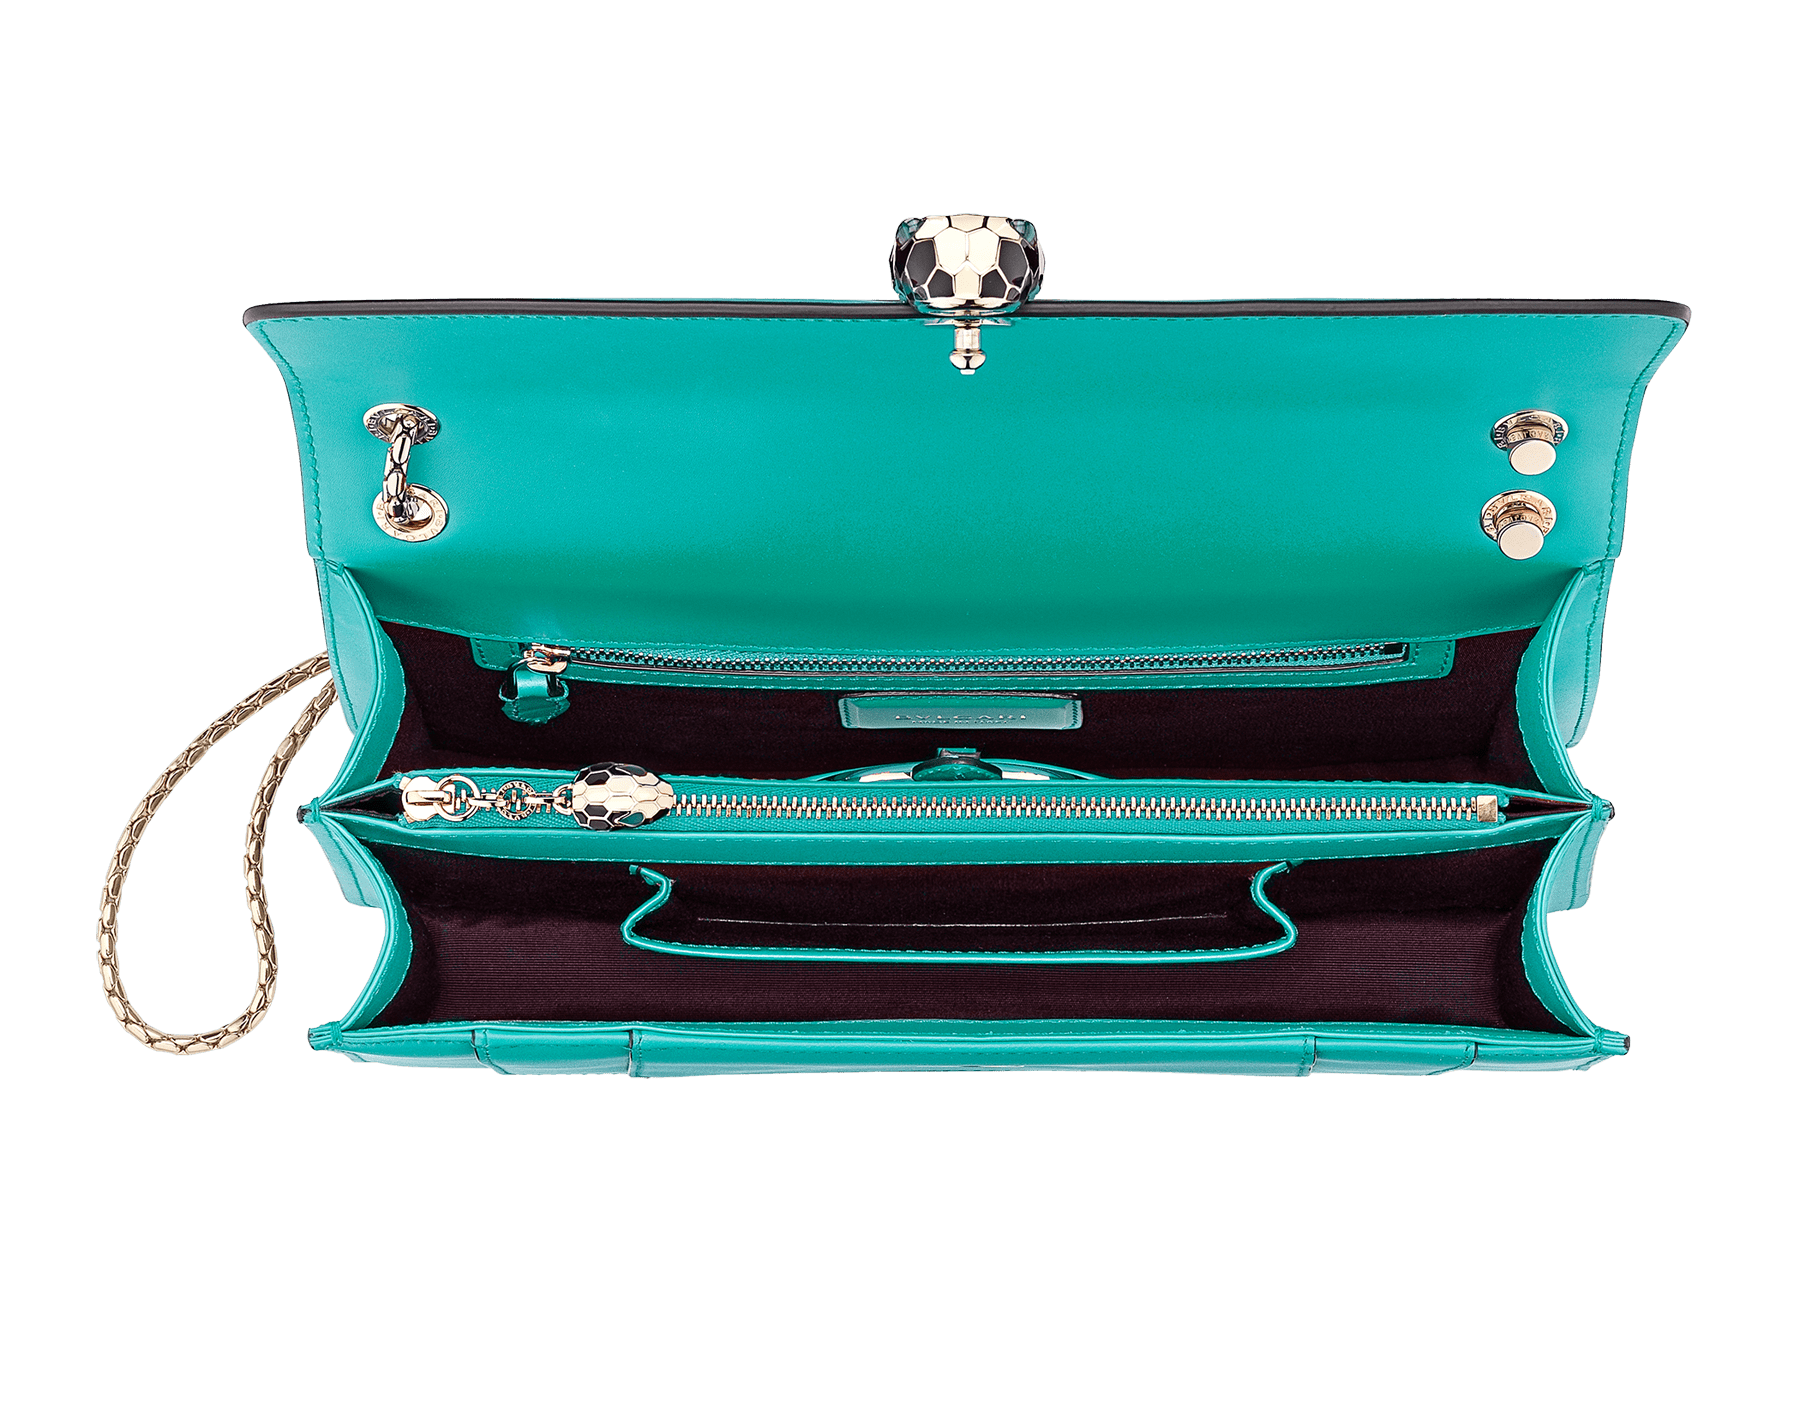 Serpenti Forever shoulder bag in tropical turquoise smooth calf leather. Snakehead closure in light gold plated brass decorated with black and white enamel, and green malachite eyes. 287931 image 4